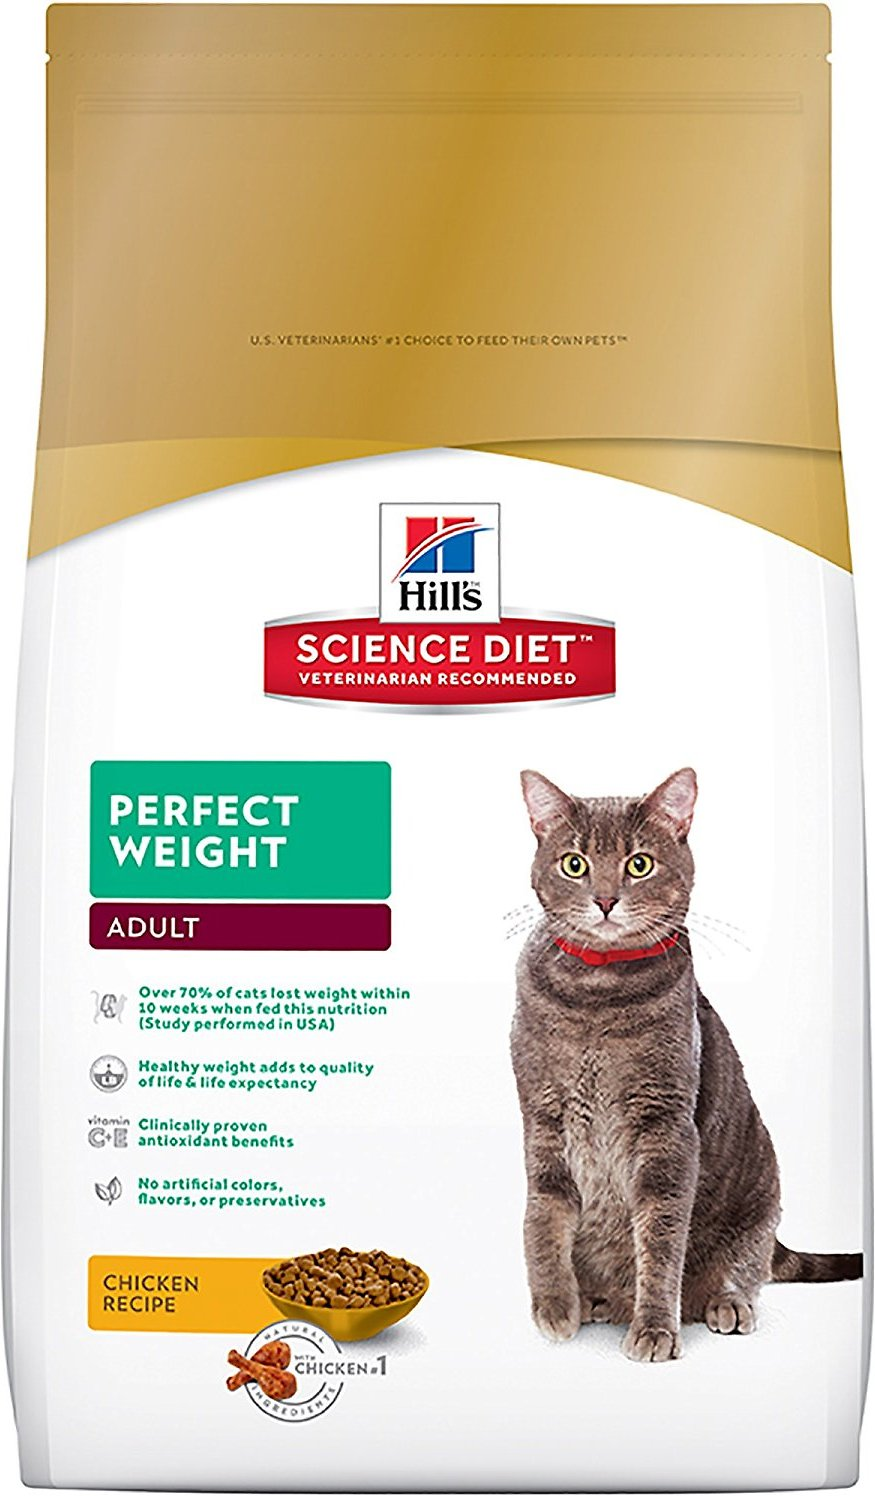 Hill's Science Diet Adult Perfect Weight Dry Cat Food Image